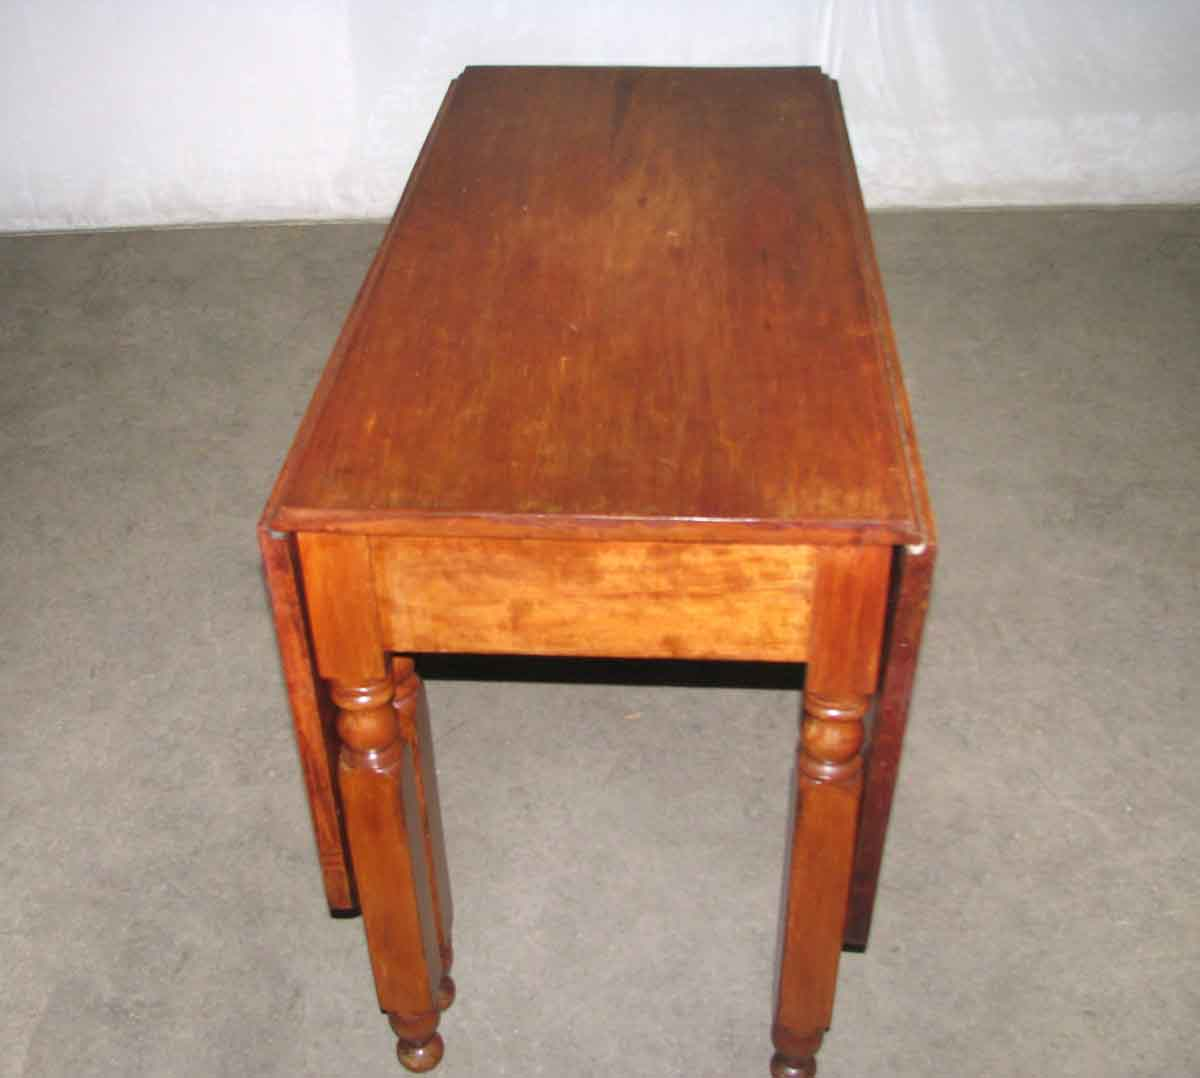 American Style Cherry Drop Leaf Table Olde Good Things : L212868 07 from ogtstore.com size 1200 x 1078 jpeg 33kB